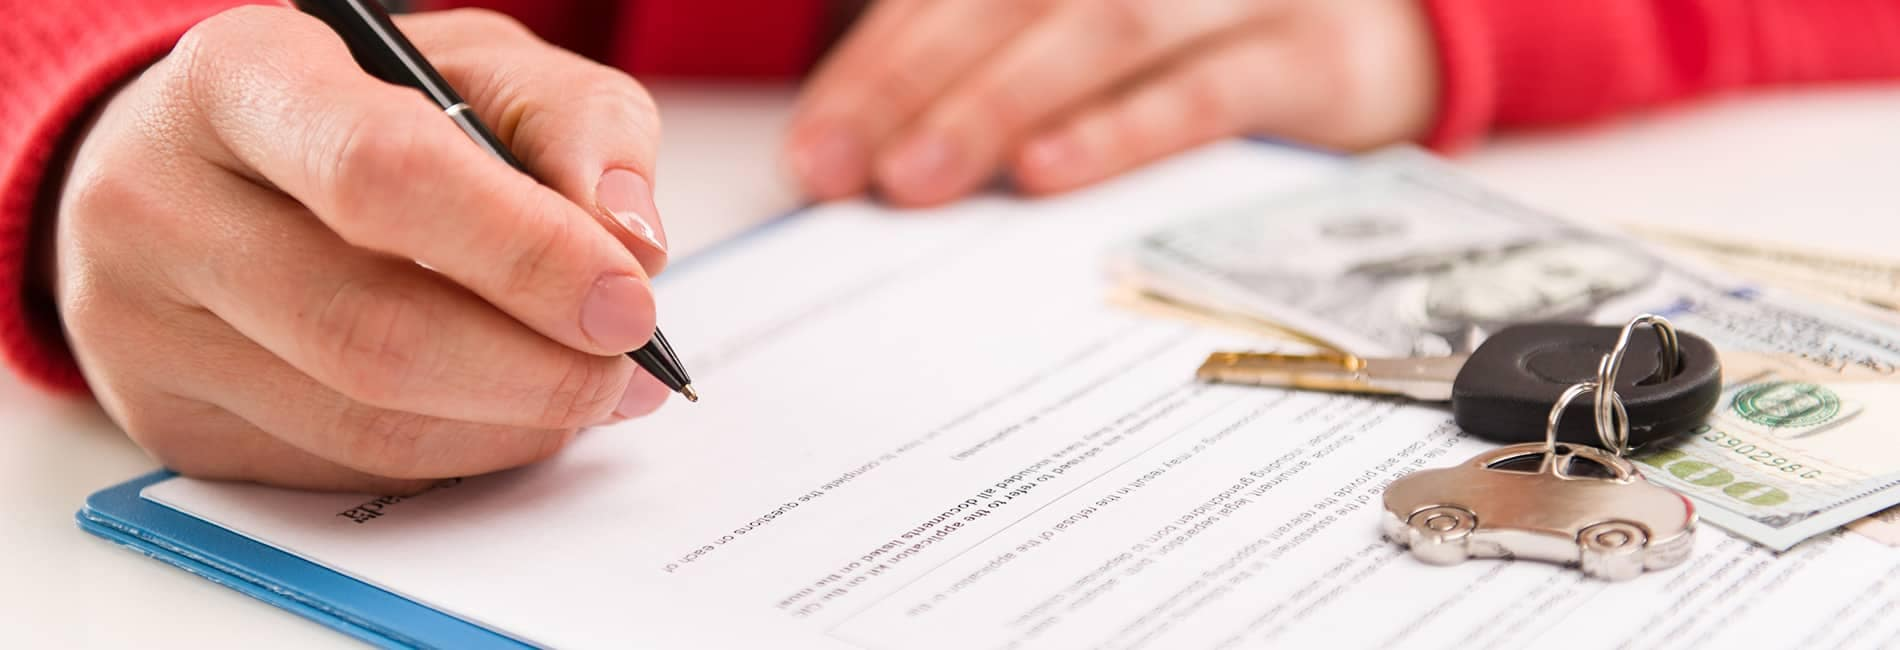 Signing a finance agreement with keys on the table